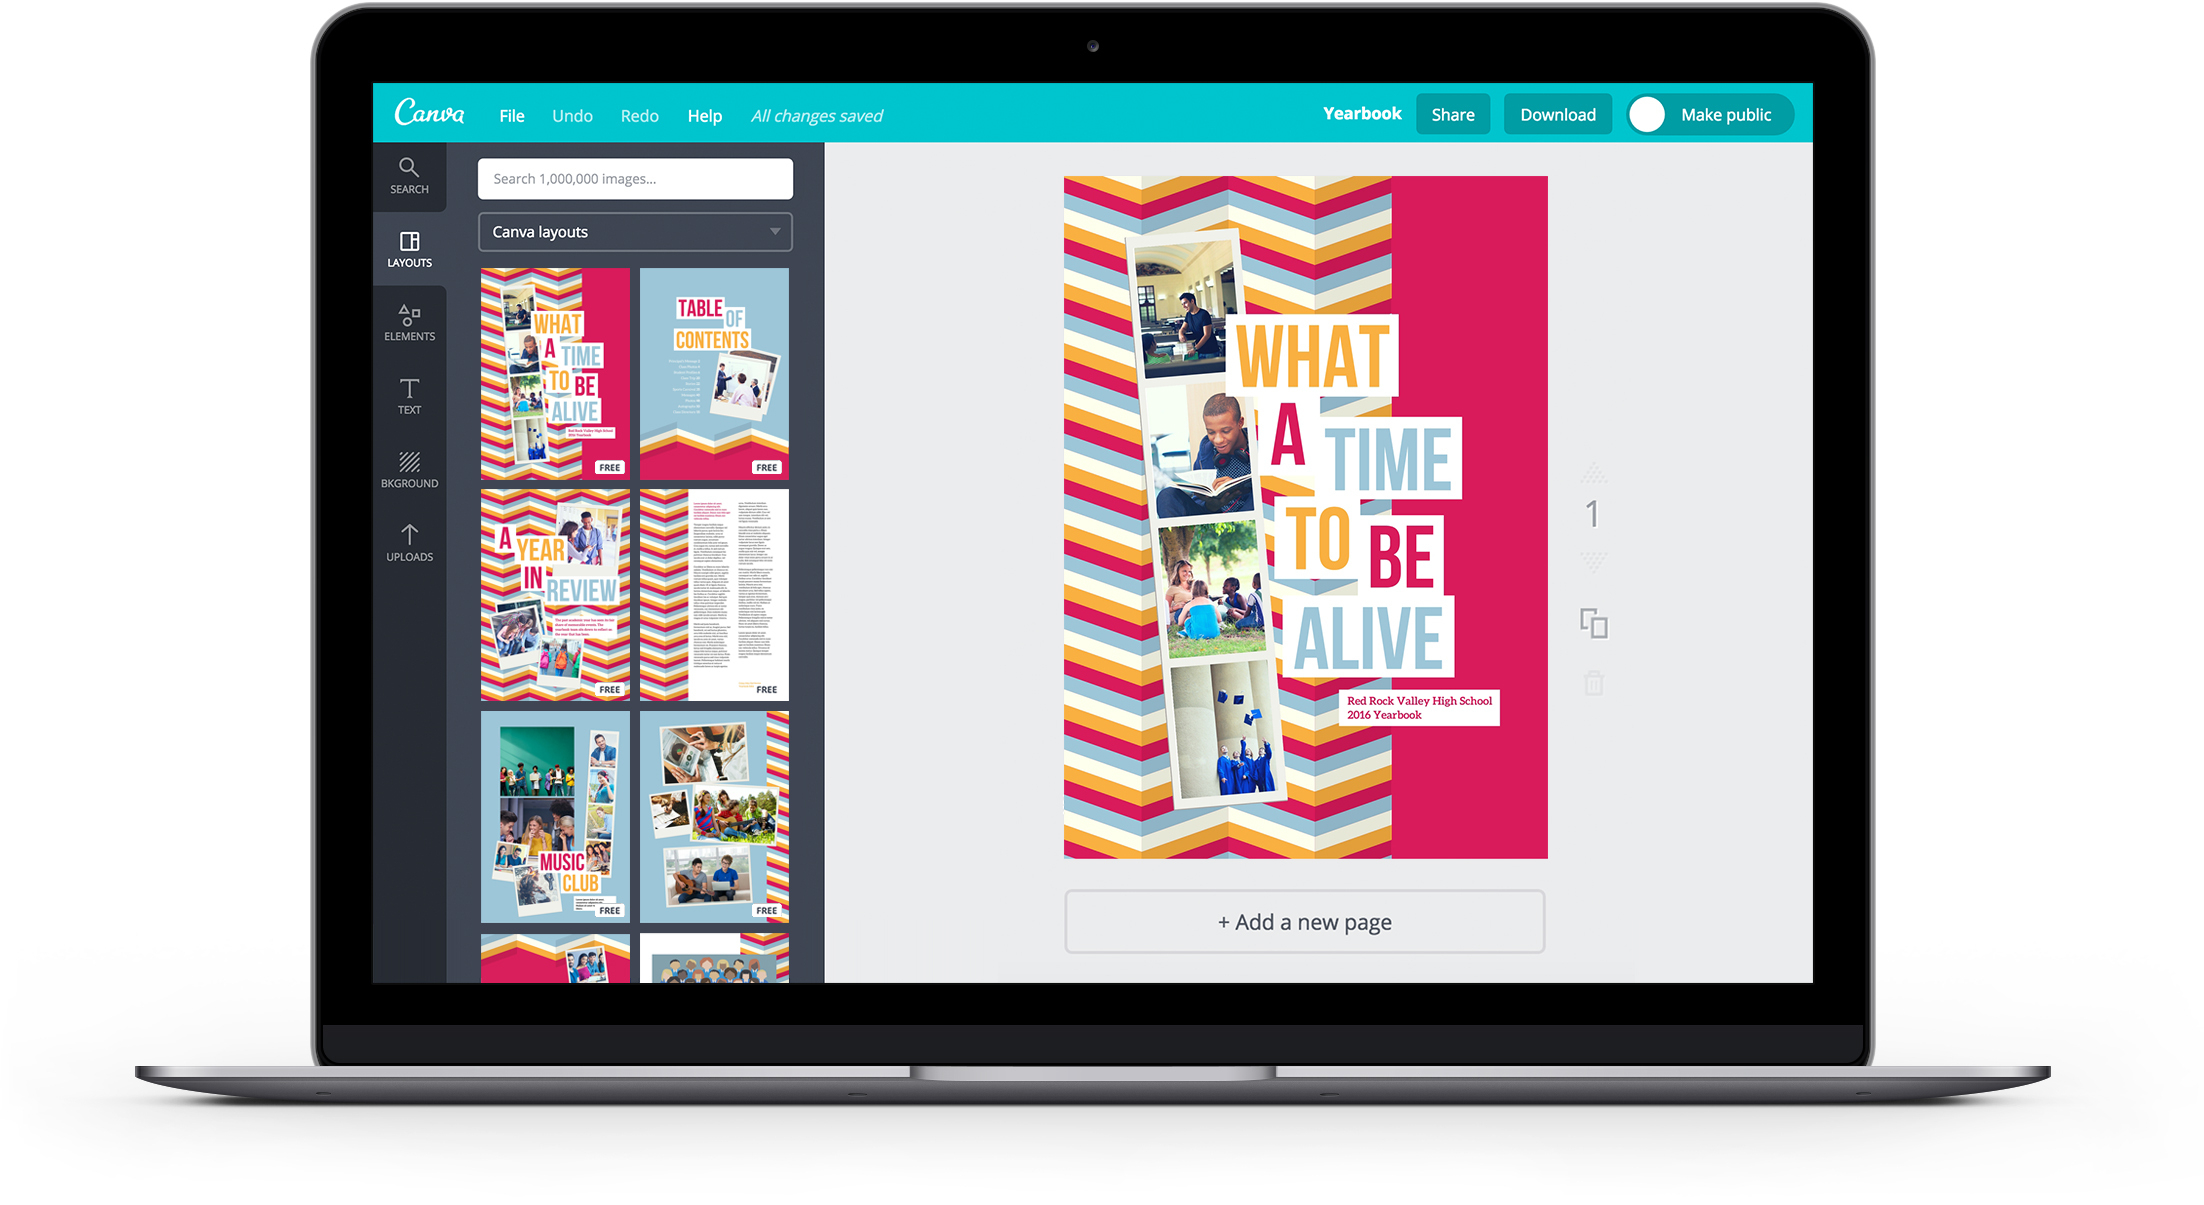 Free Online Yearbook Maker: Design A Custom Yearbook In Canva - Free Printable Yearbook Templates